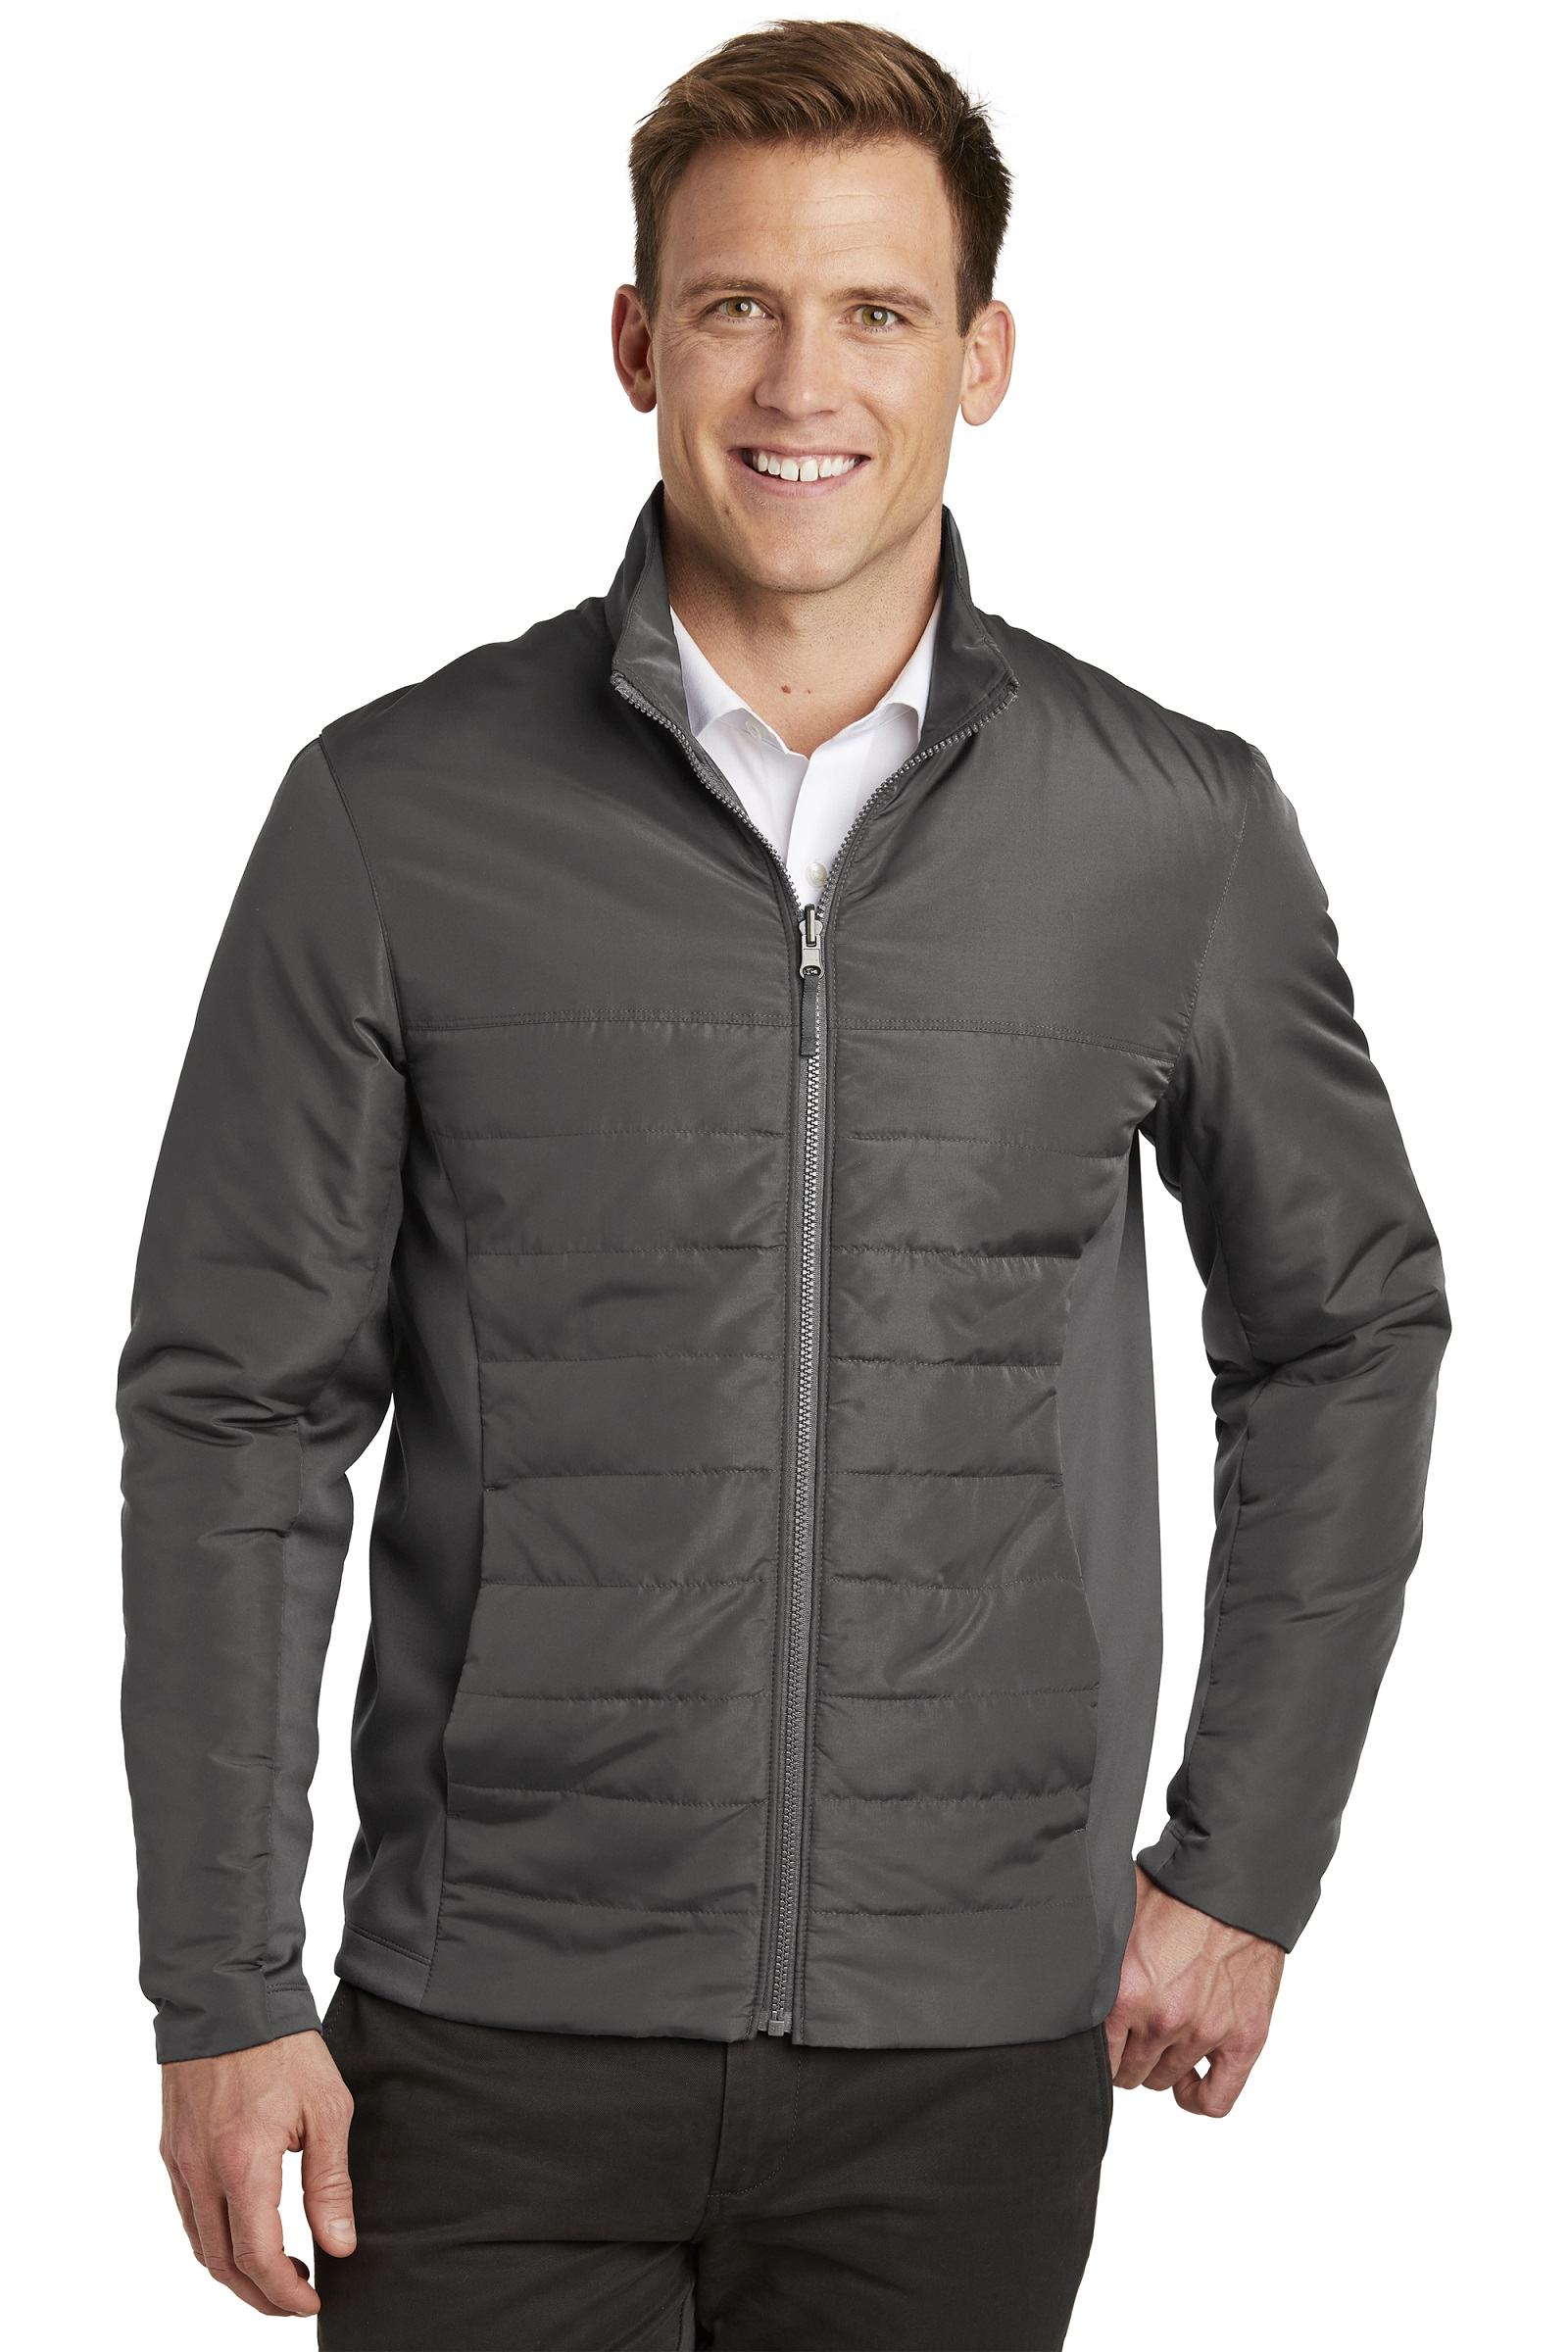 Port Authority Embroidered Men's Collective Insulated Jacket